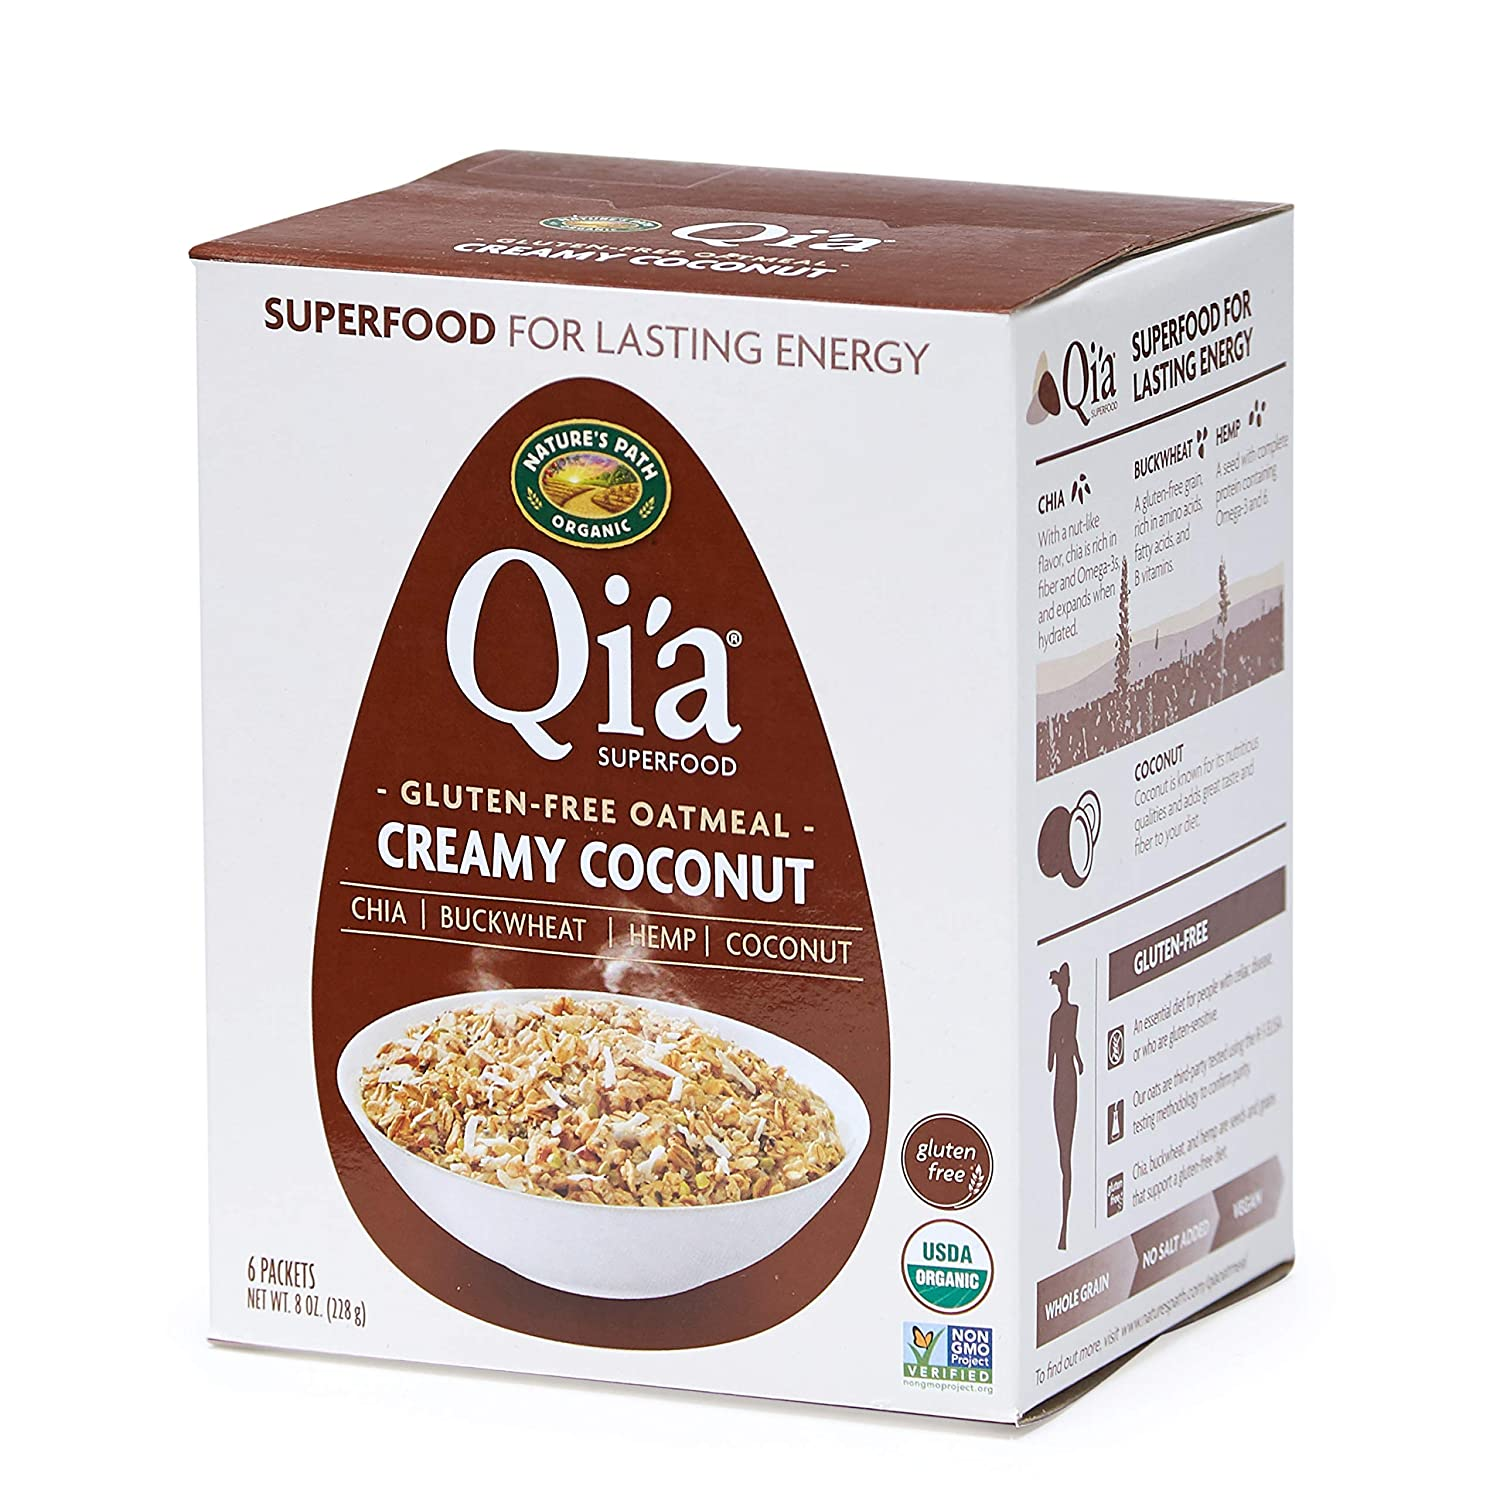 Nature's Path Qi'a Superfood Creamy Coconut Instant Oatmeal, Healthy, Organic & Gluten Free, 6 Pouches per Box, 8 Ounces (Pack of 6)